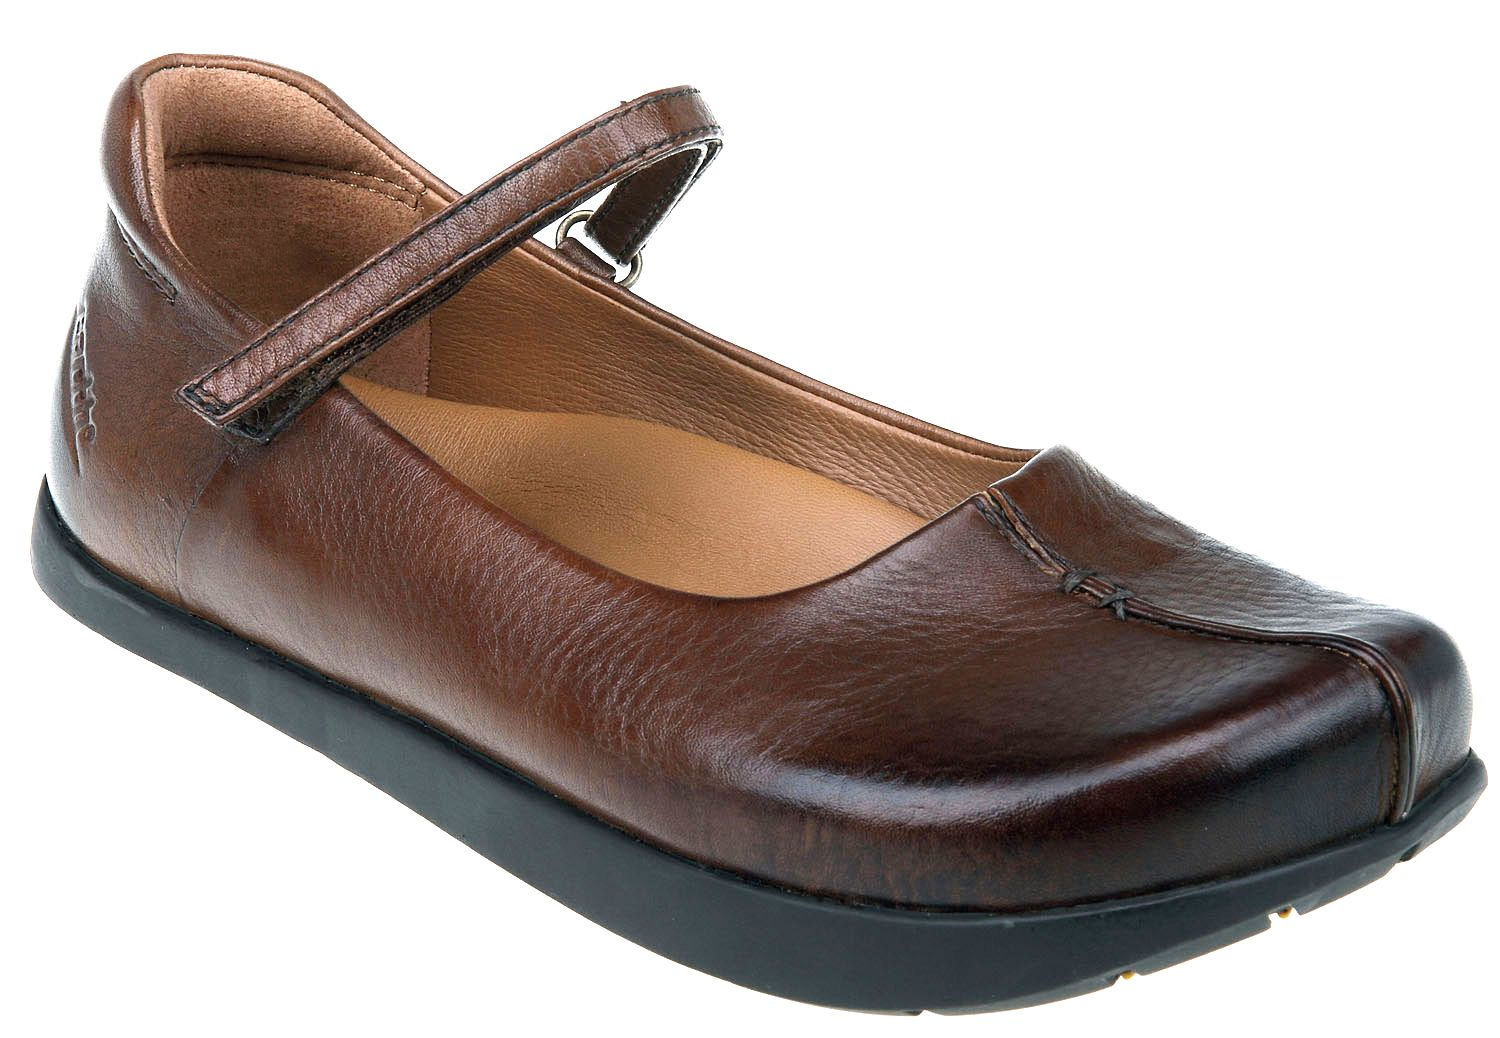 86aff94e87533 Kalso Earth Shoe Solar Maryjane (Almond Leather) | Clothes I L<3VE ...